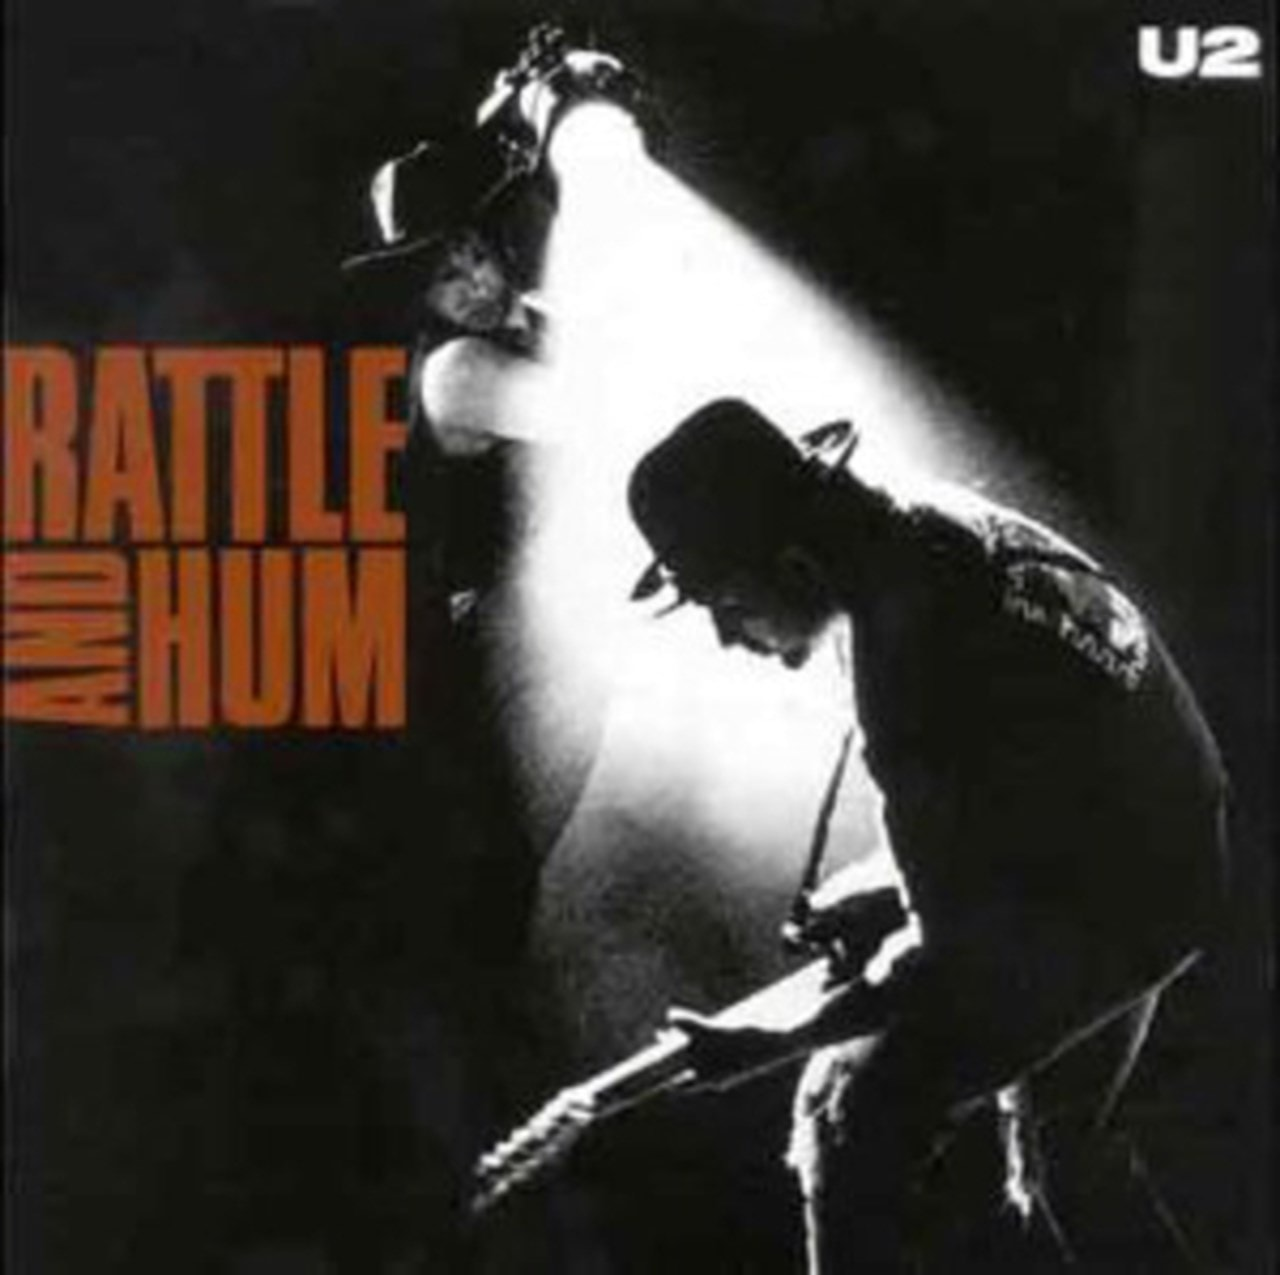 Rattle and Hum - 1